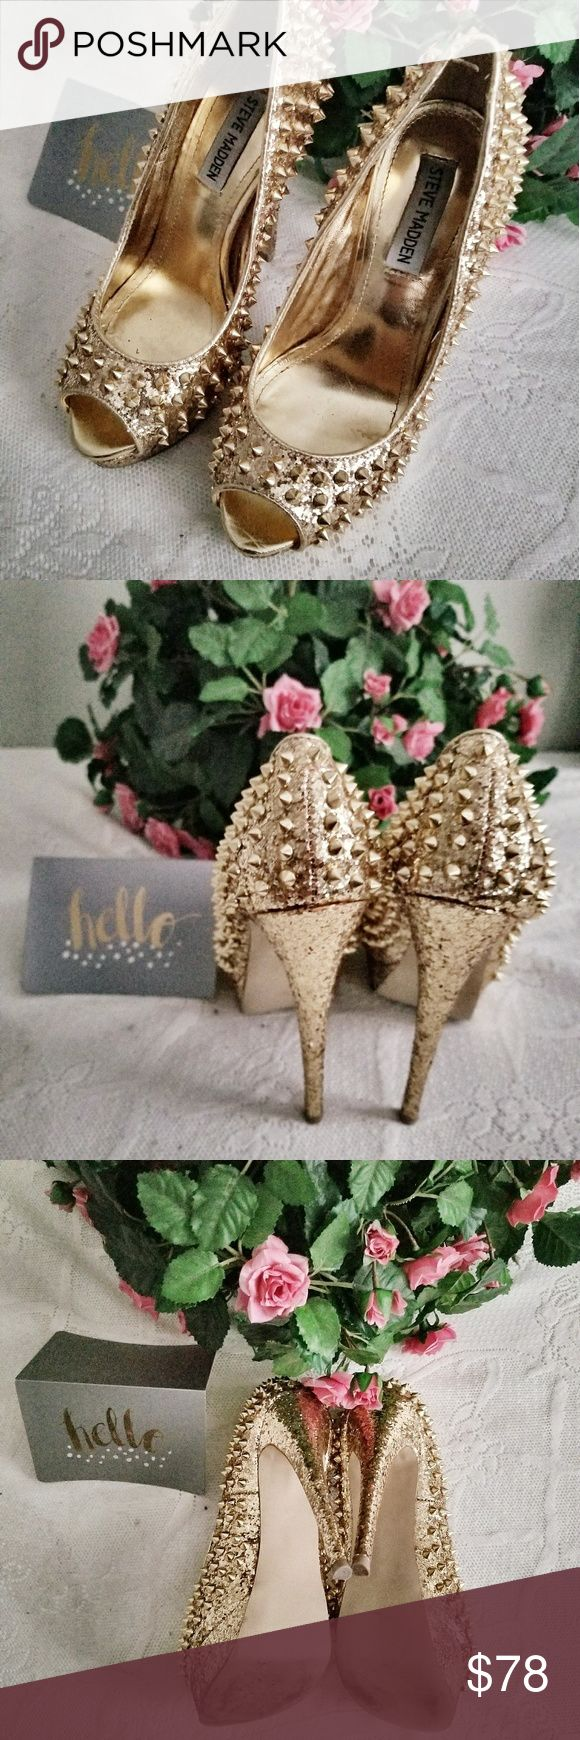 Steve Madden Gold Spiked Heels Platform heels by Steve Madden. The spikes take this already show stopping gold glitter platform to higher heights! Perfect for a special girls night out or Vegas! Like new! Steve Madden Shoes Platforms